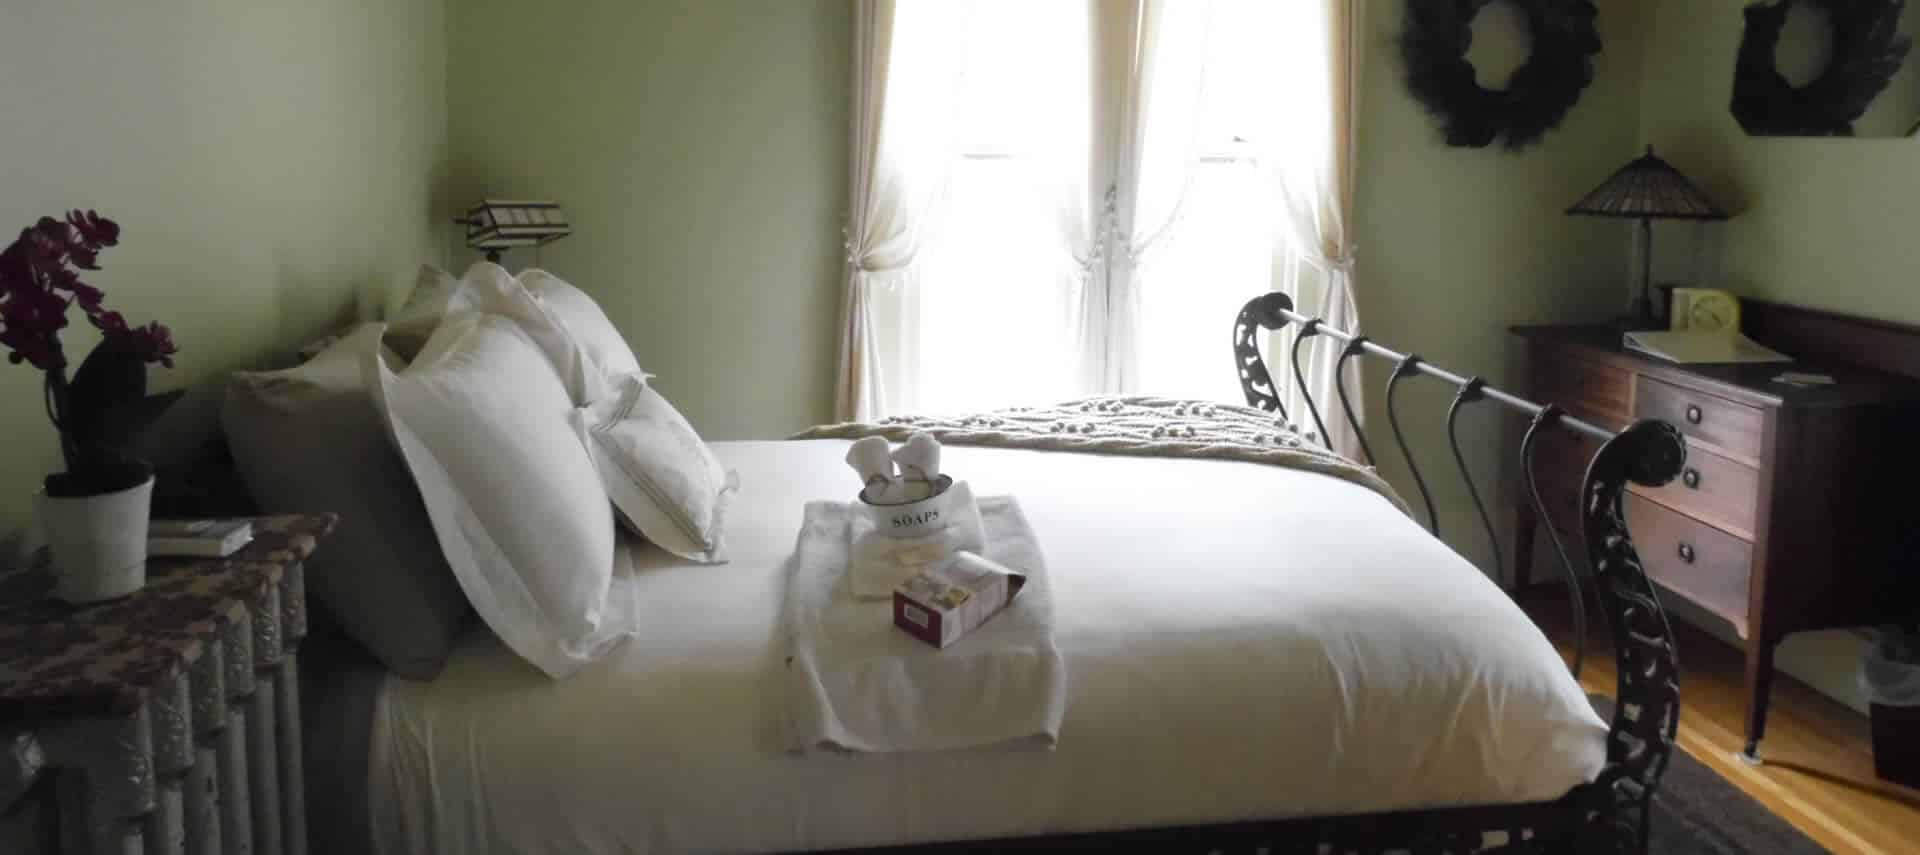 A guestroom with pale green walls holds dark wood furniture, an ornate iron bed with white bedding and a large window.